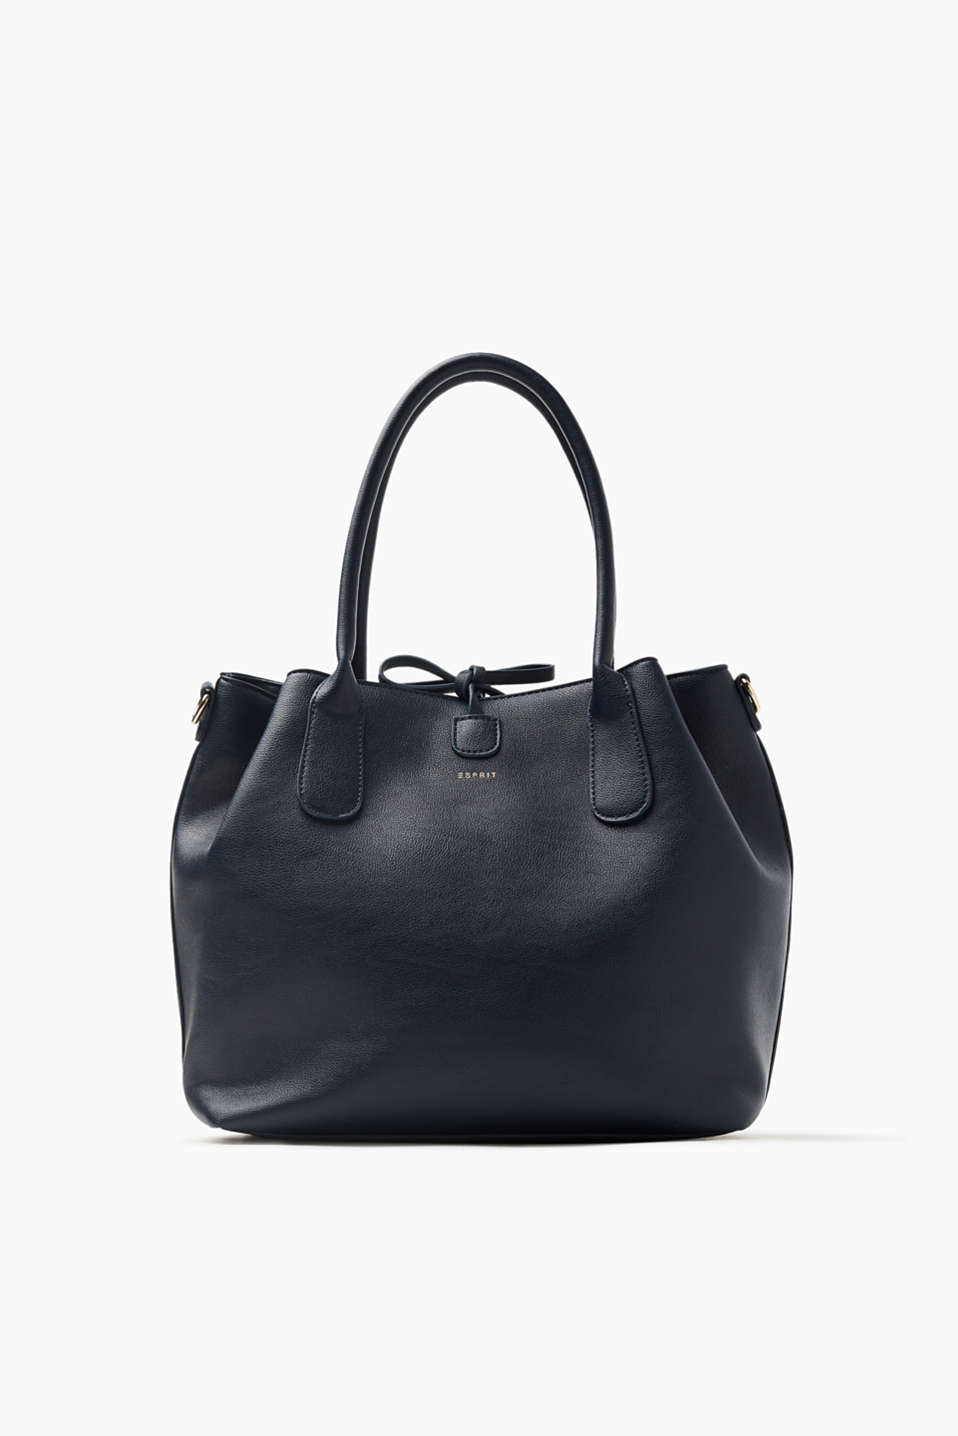 Your 24/7 fave - for the office or everyday use! City bag made of smooth faux leather.